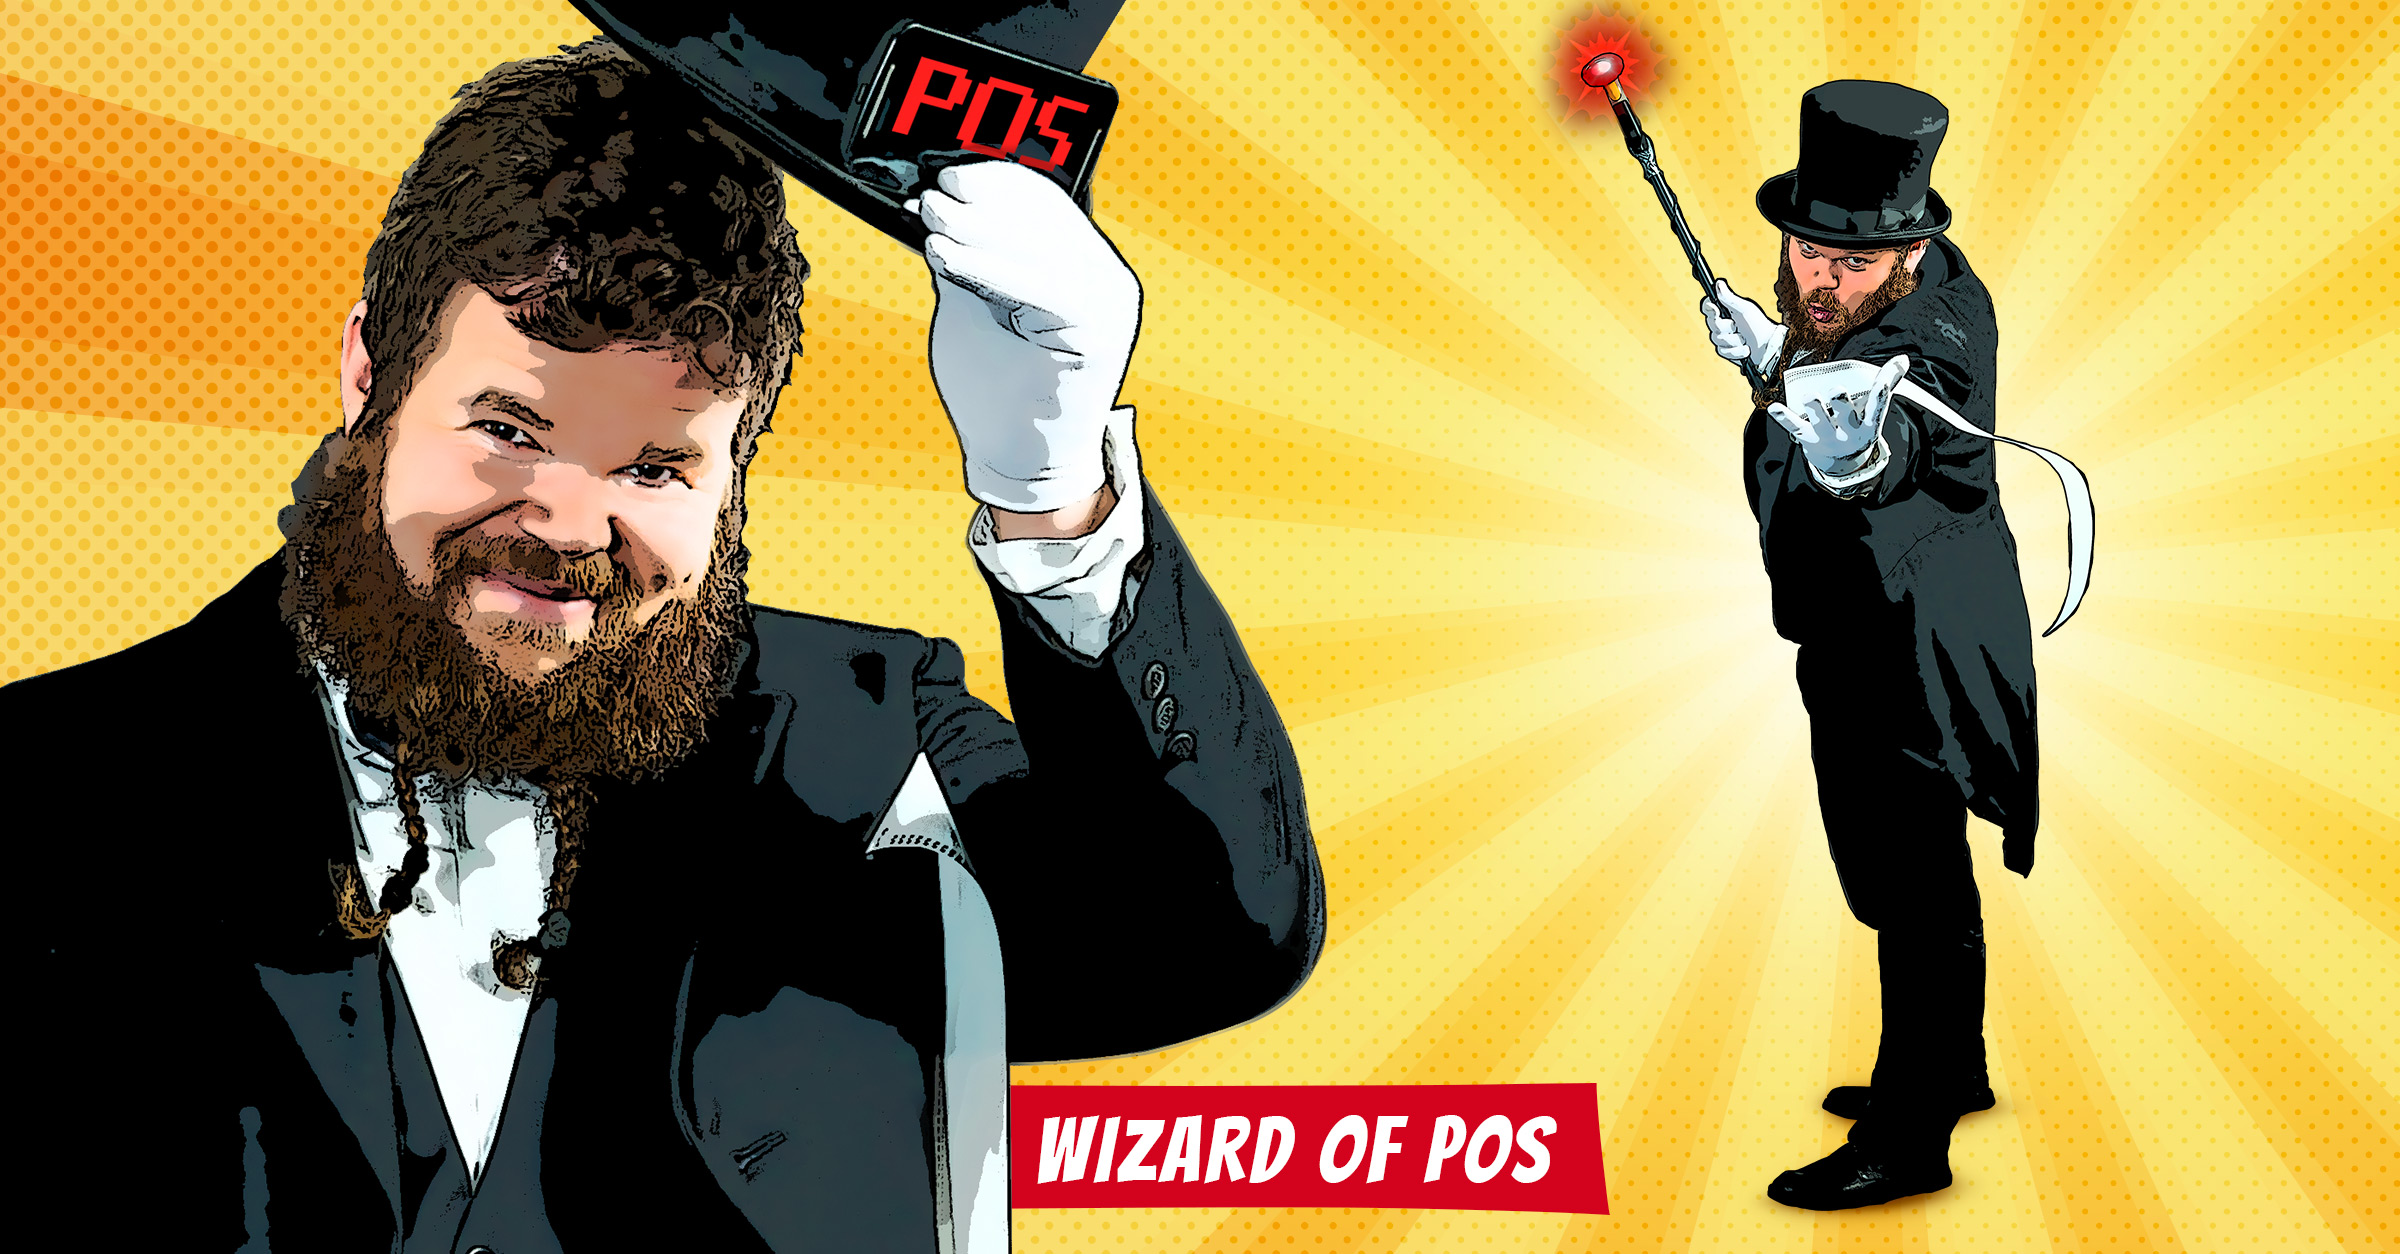 Wizard of POS plentyPOS plentymarkets